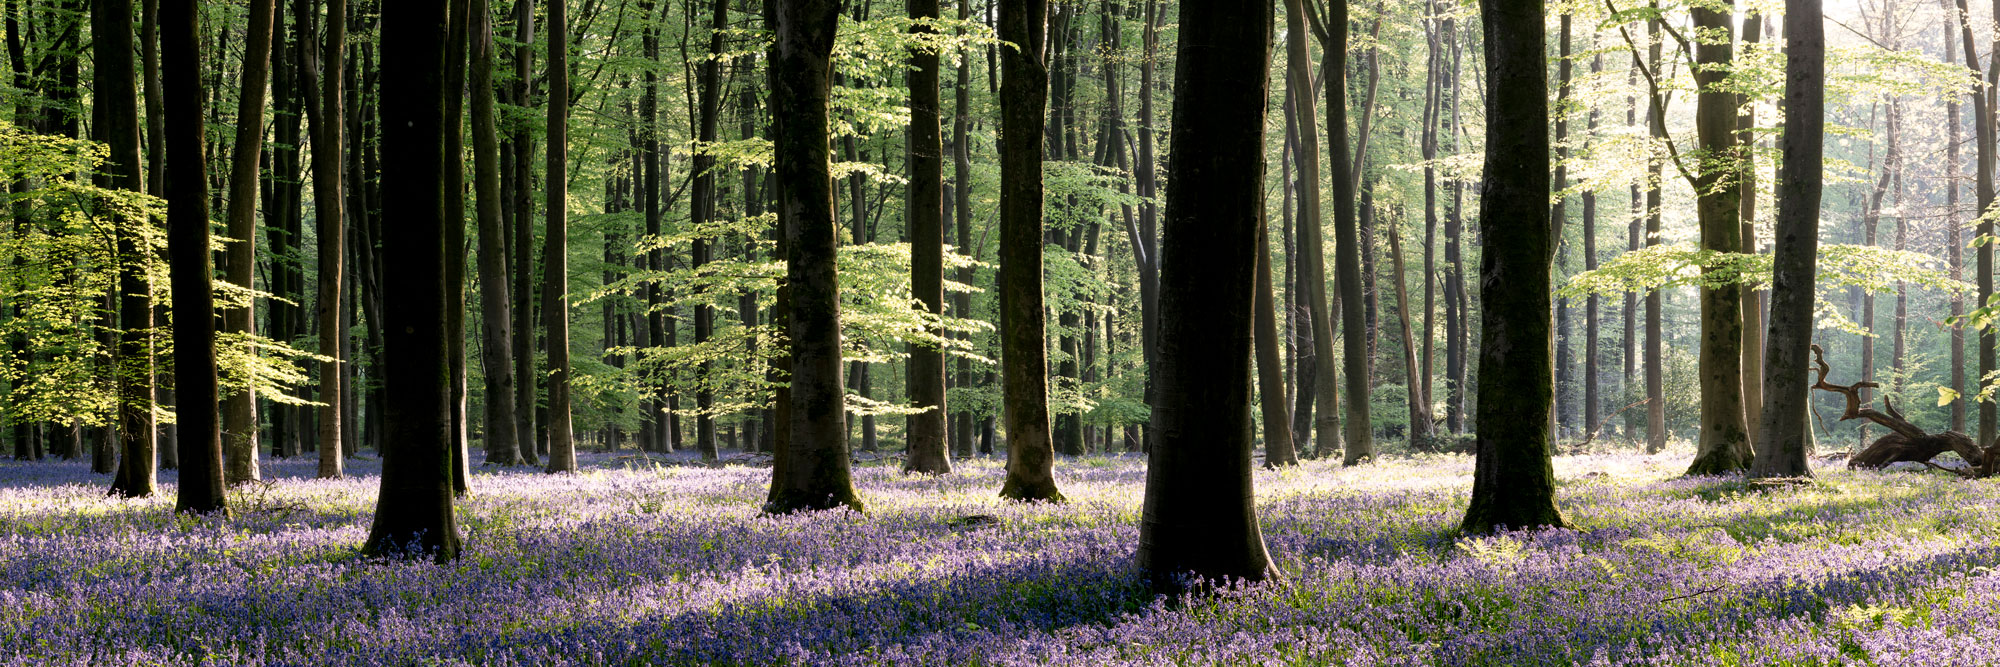 a panoramic print of bluebells in full bloom in a beach forest